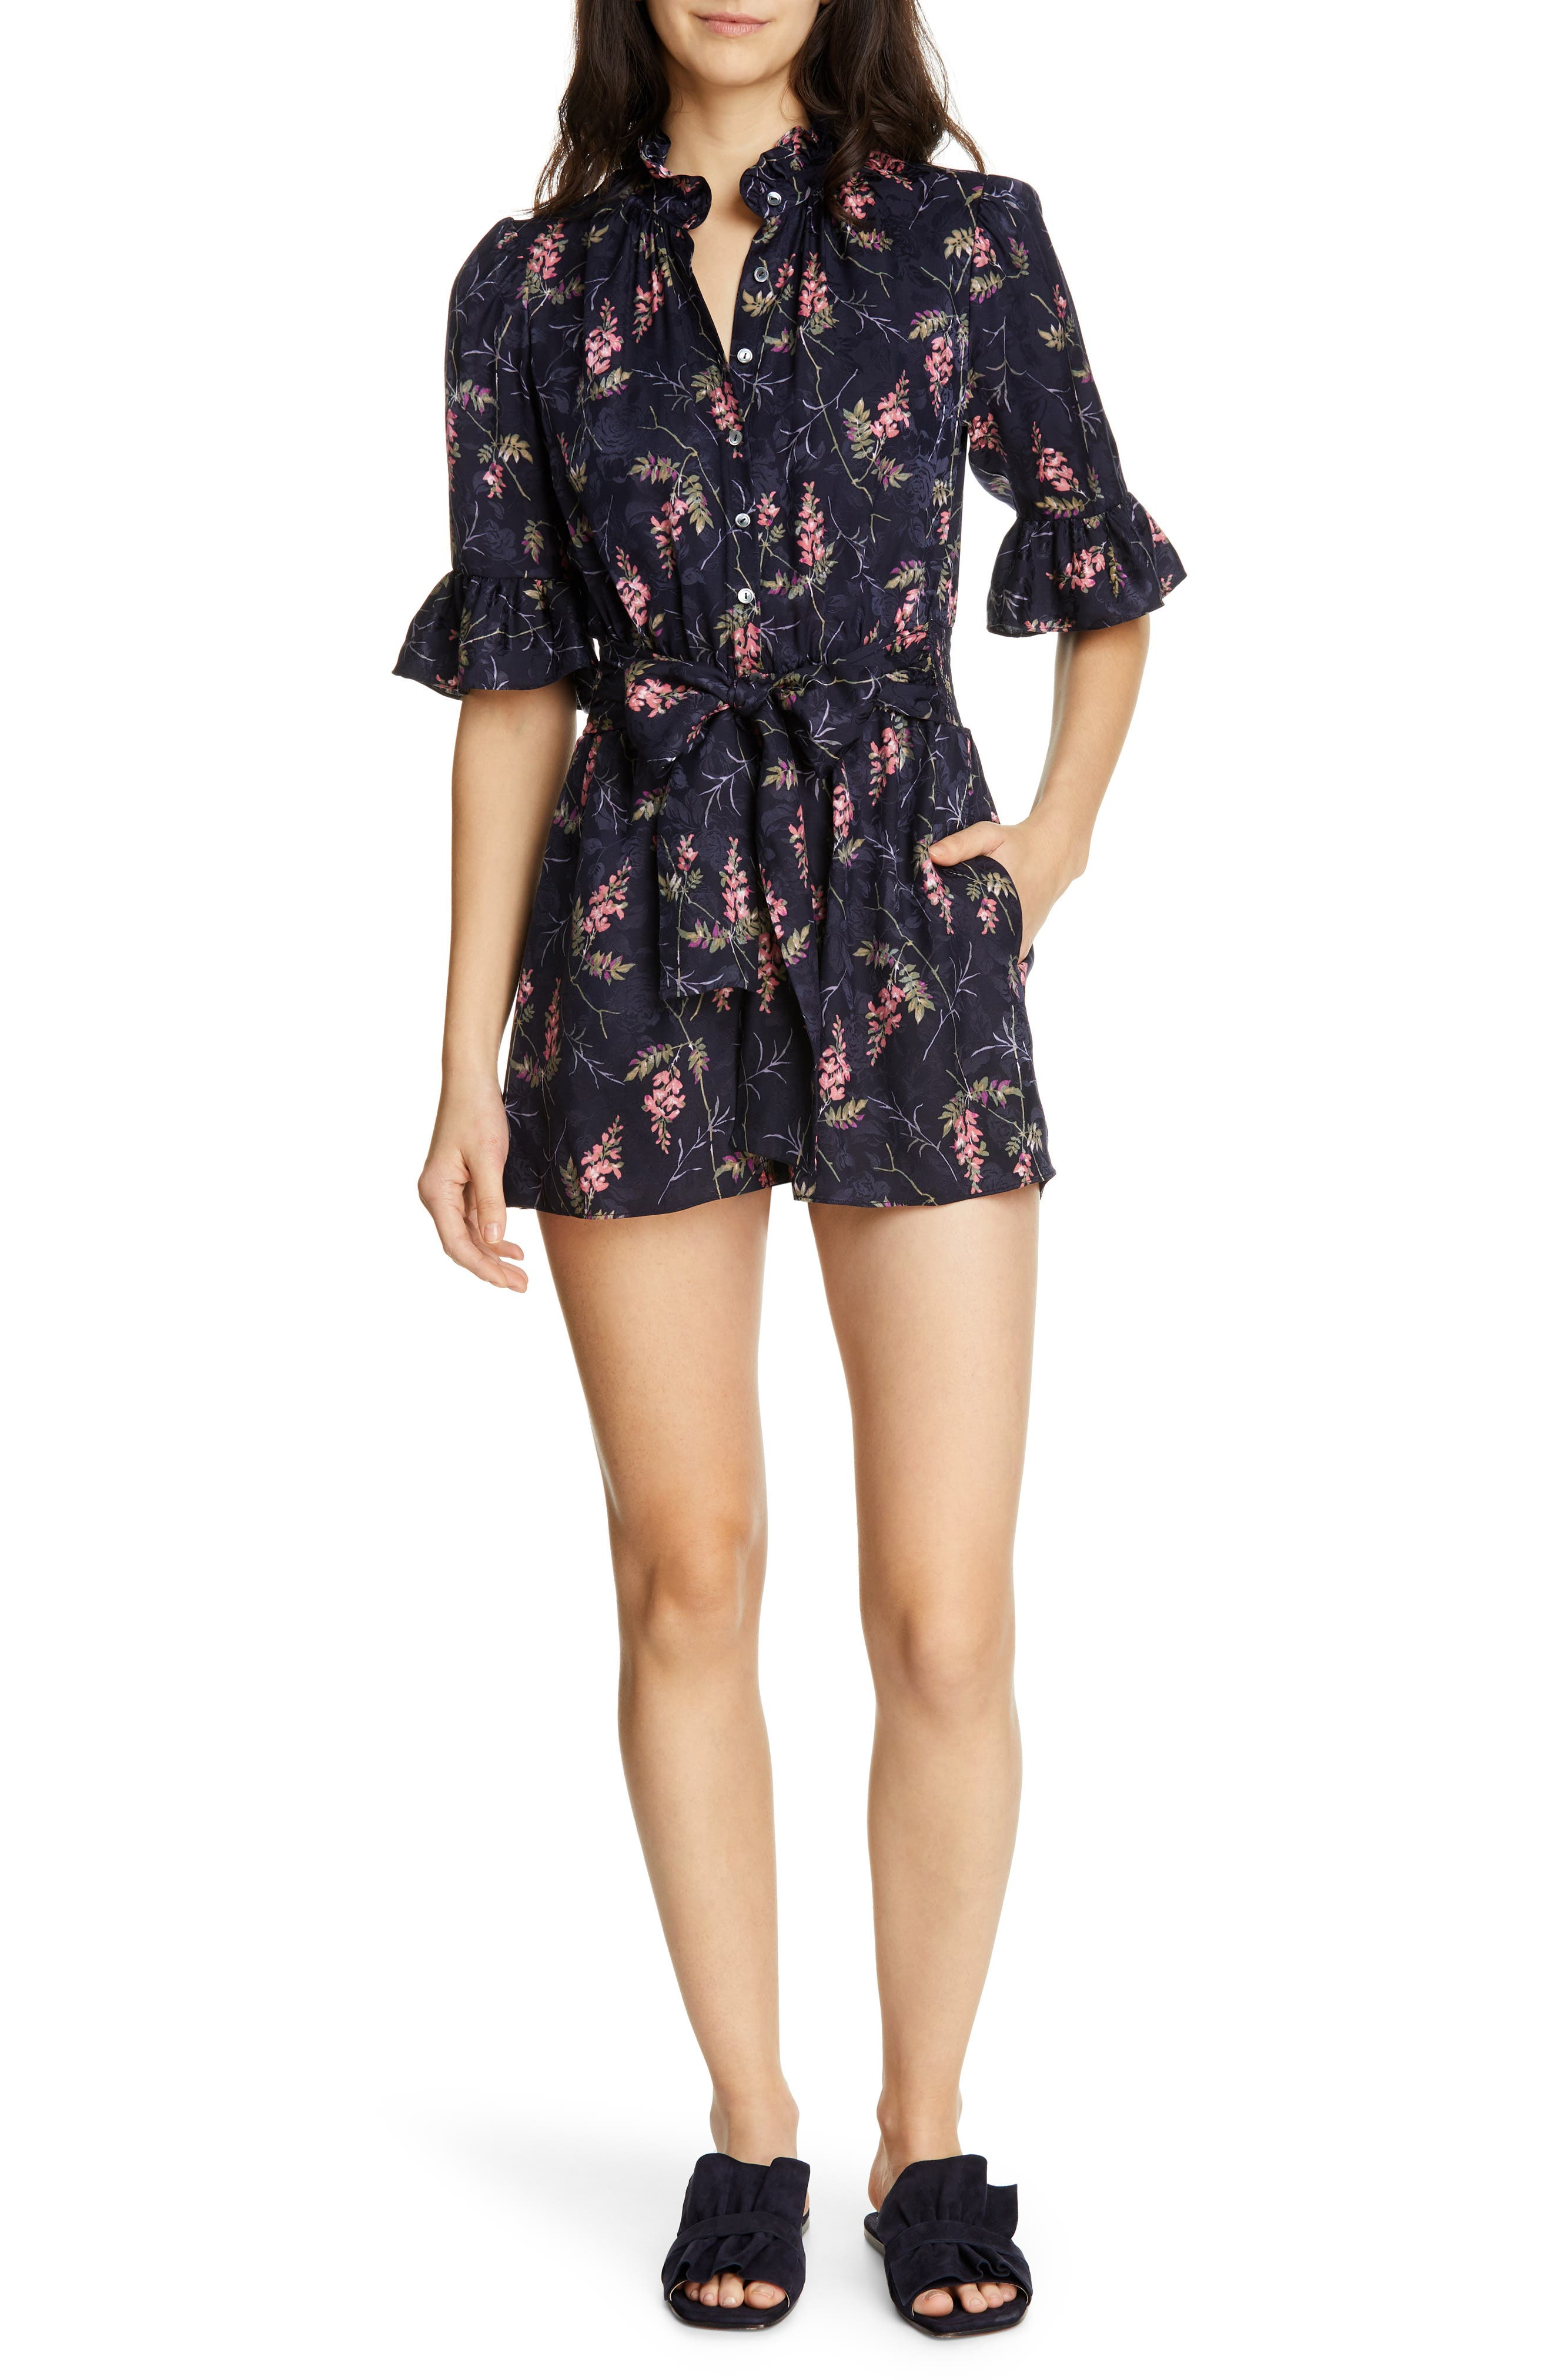 REBECCA TAYLOR, Ivie Floral Silk Blend Romper, Main thumbnail 1, color, NAVY COMBO